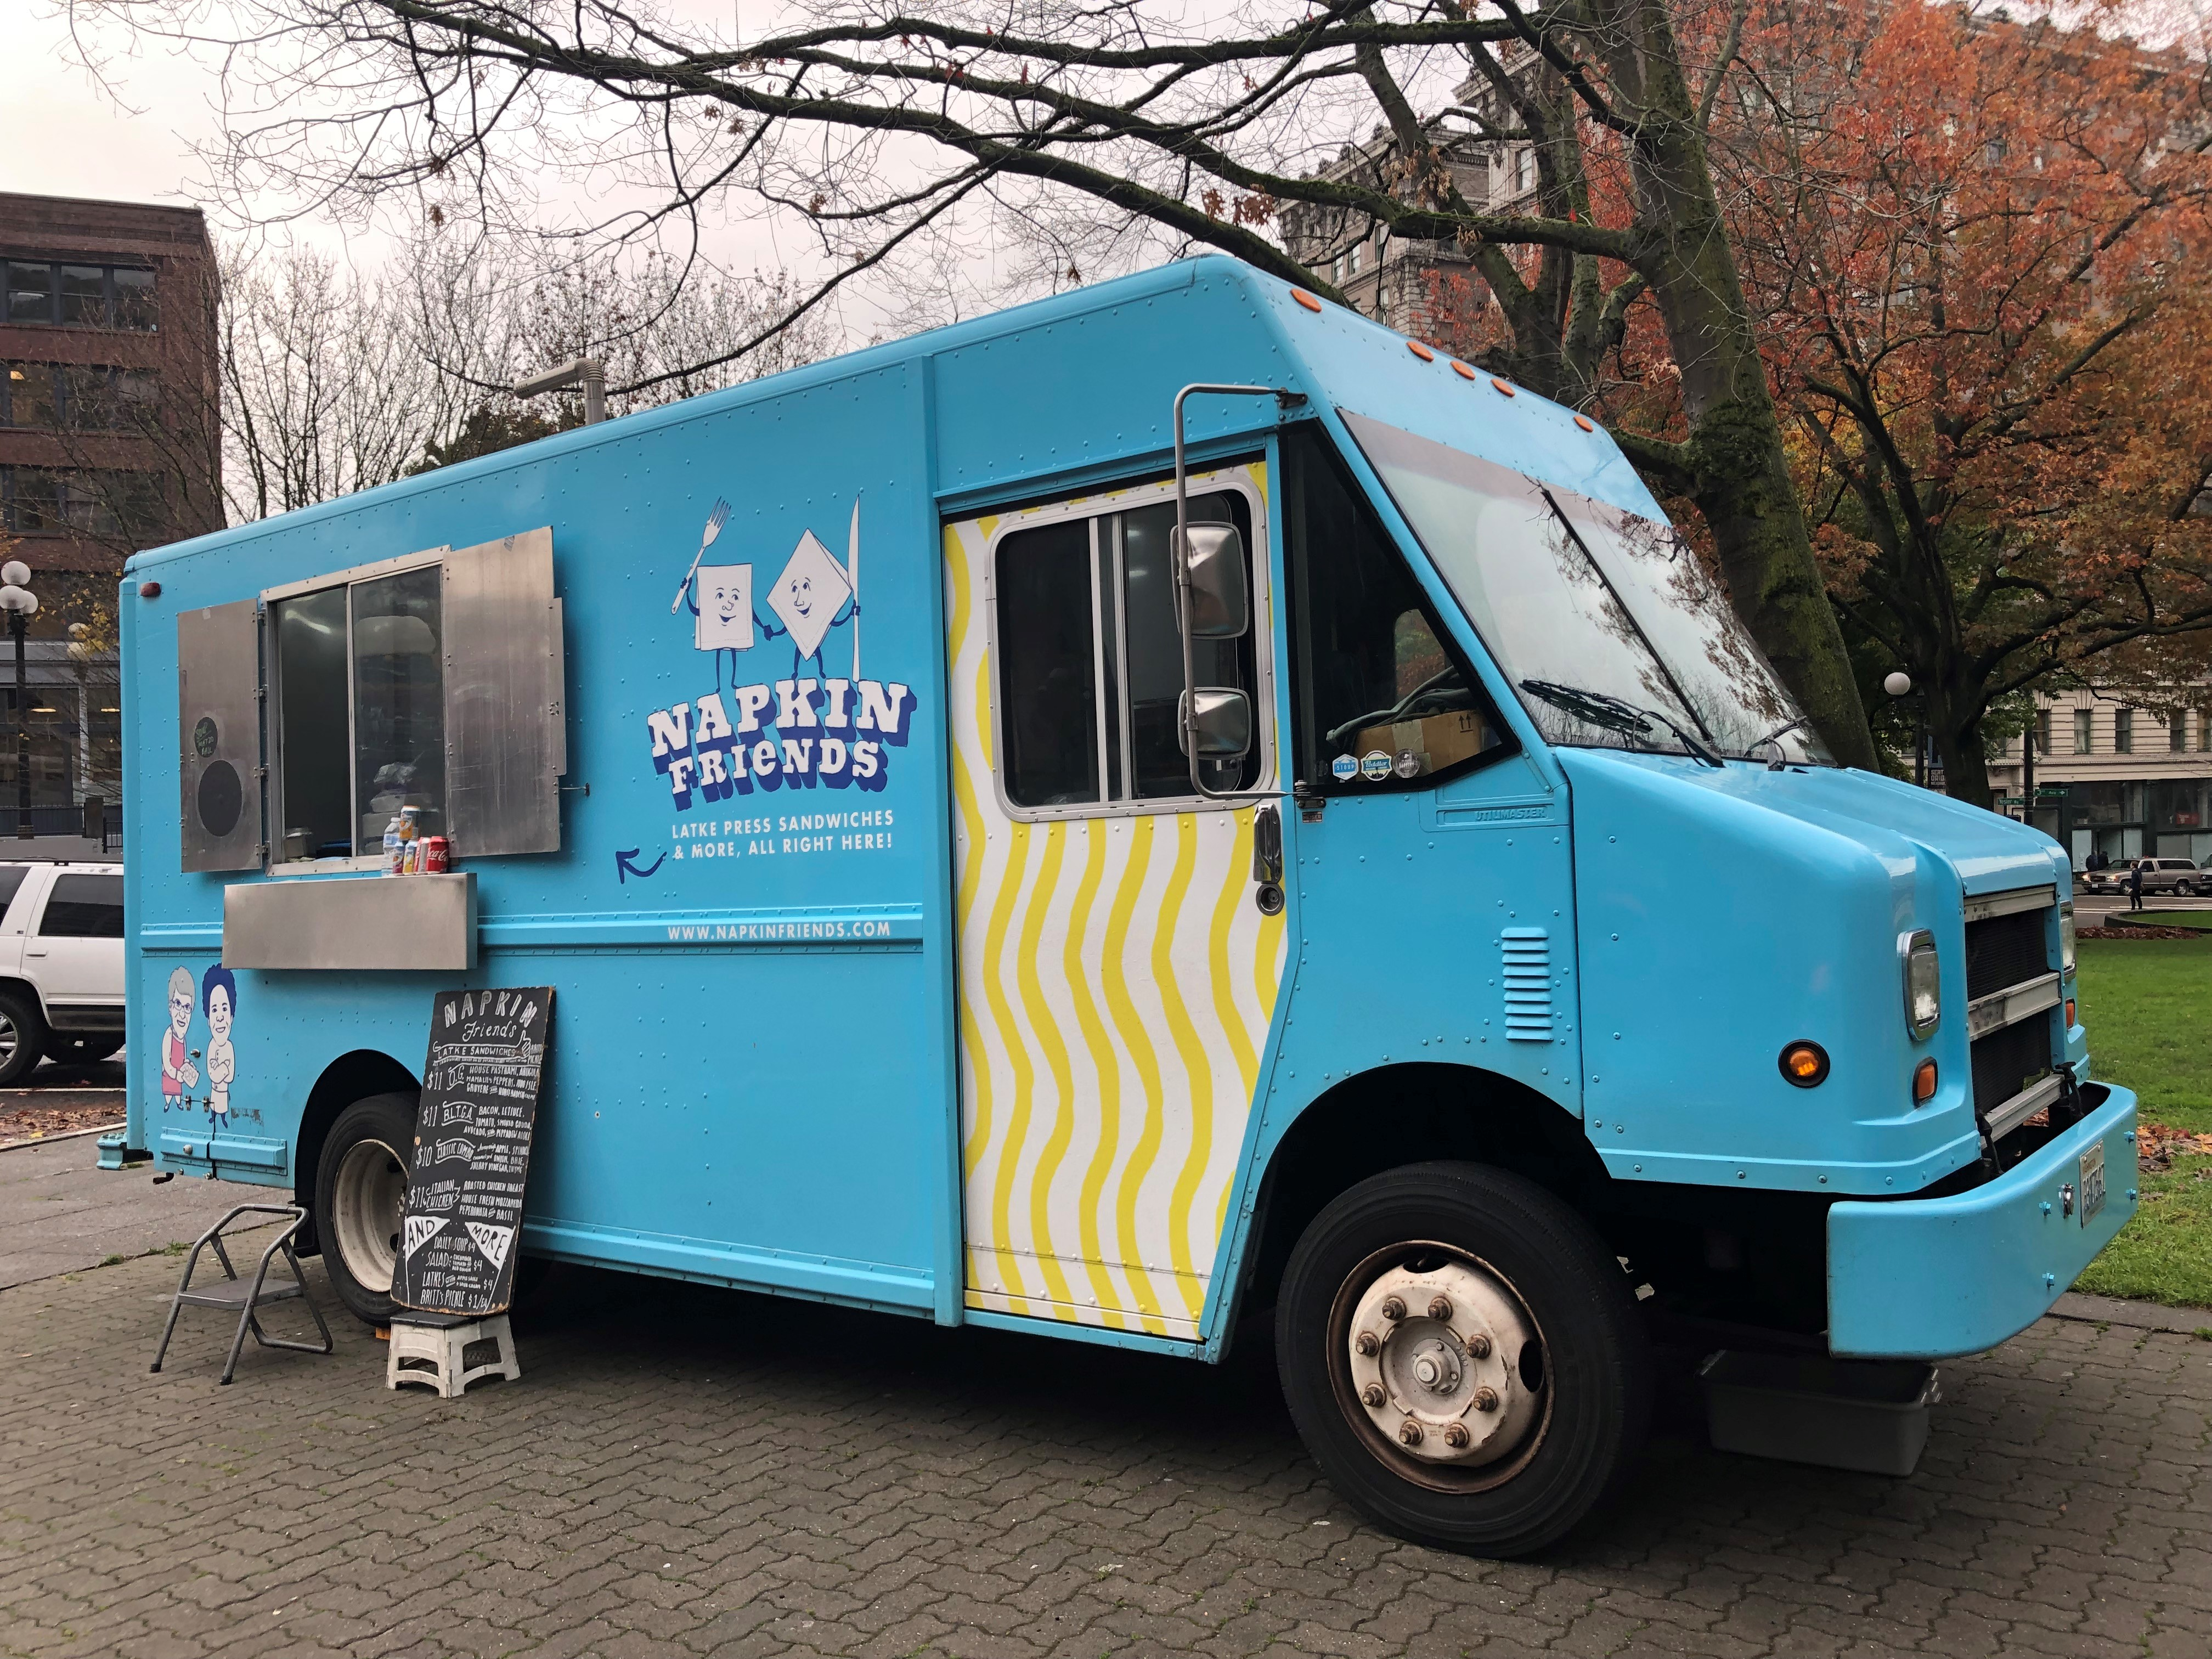 At Napkin Friends Food Truck, Chef Jonny Silverberg and his crew serve up mouth watering latkes. They have fresh twist on potato pakcakes, using them in place of bread to create mouthwatering sandwiches. In addition to the O.G. (their signature sammie) and three others, their menu also features Jewish food faves like Matzoh Ball Soup.{ } (Image Napkin Friends)